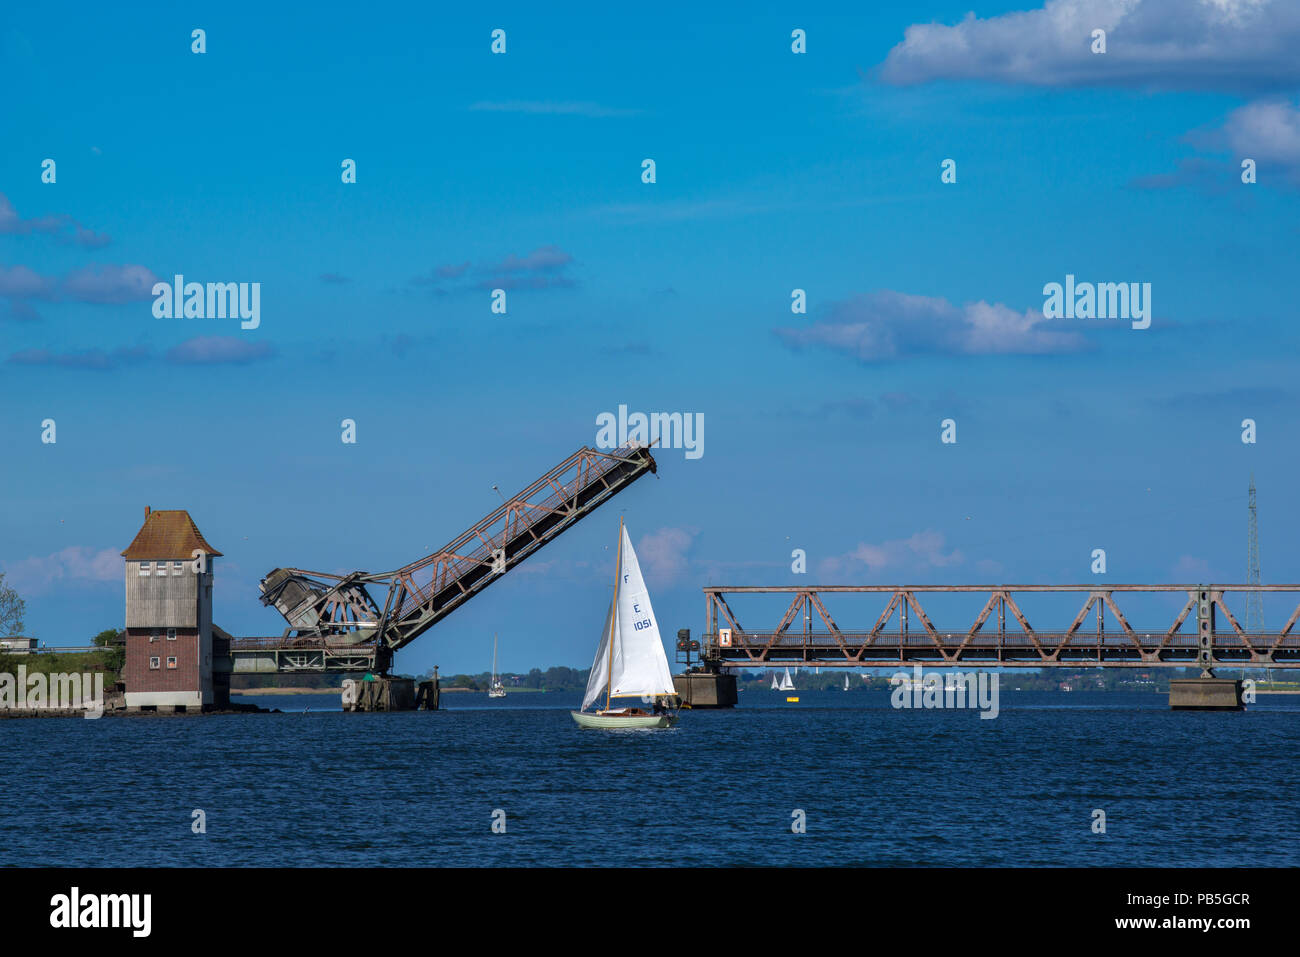 Clappbridge across the Schlei Fjord opening for sailingboats to cross, Lindaunis, landscape of Angeln, Schleswig-Holstein, Germany - Stock Image